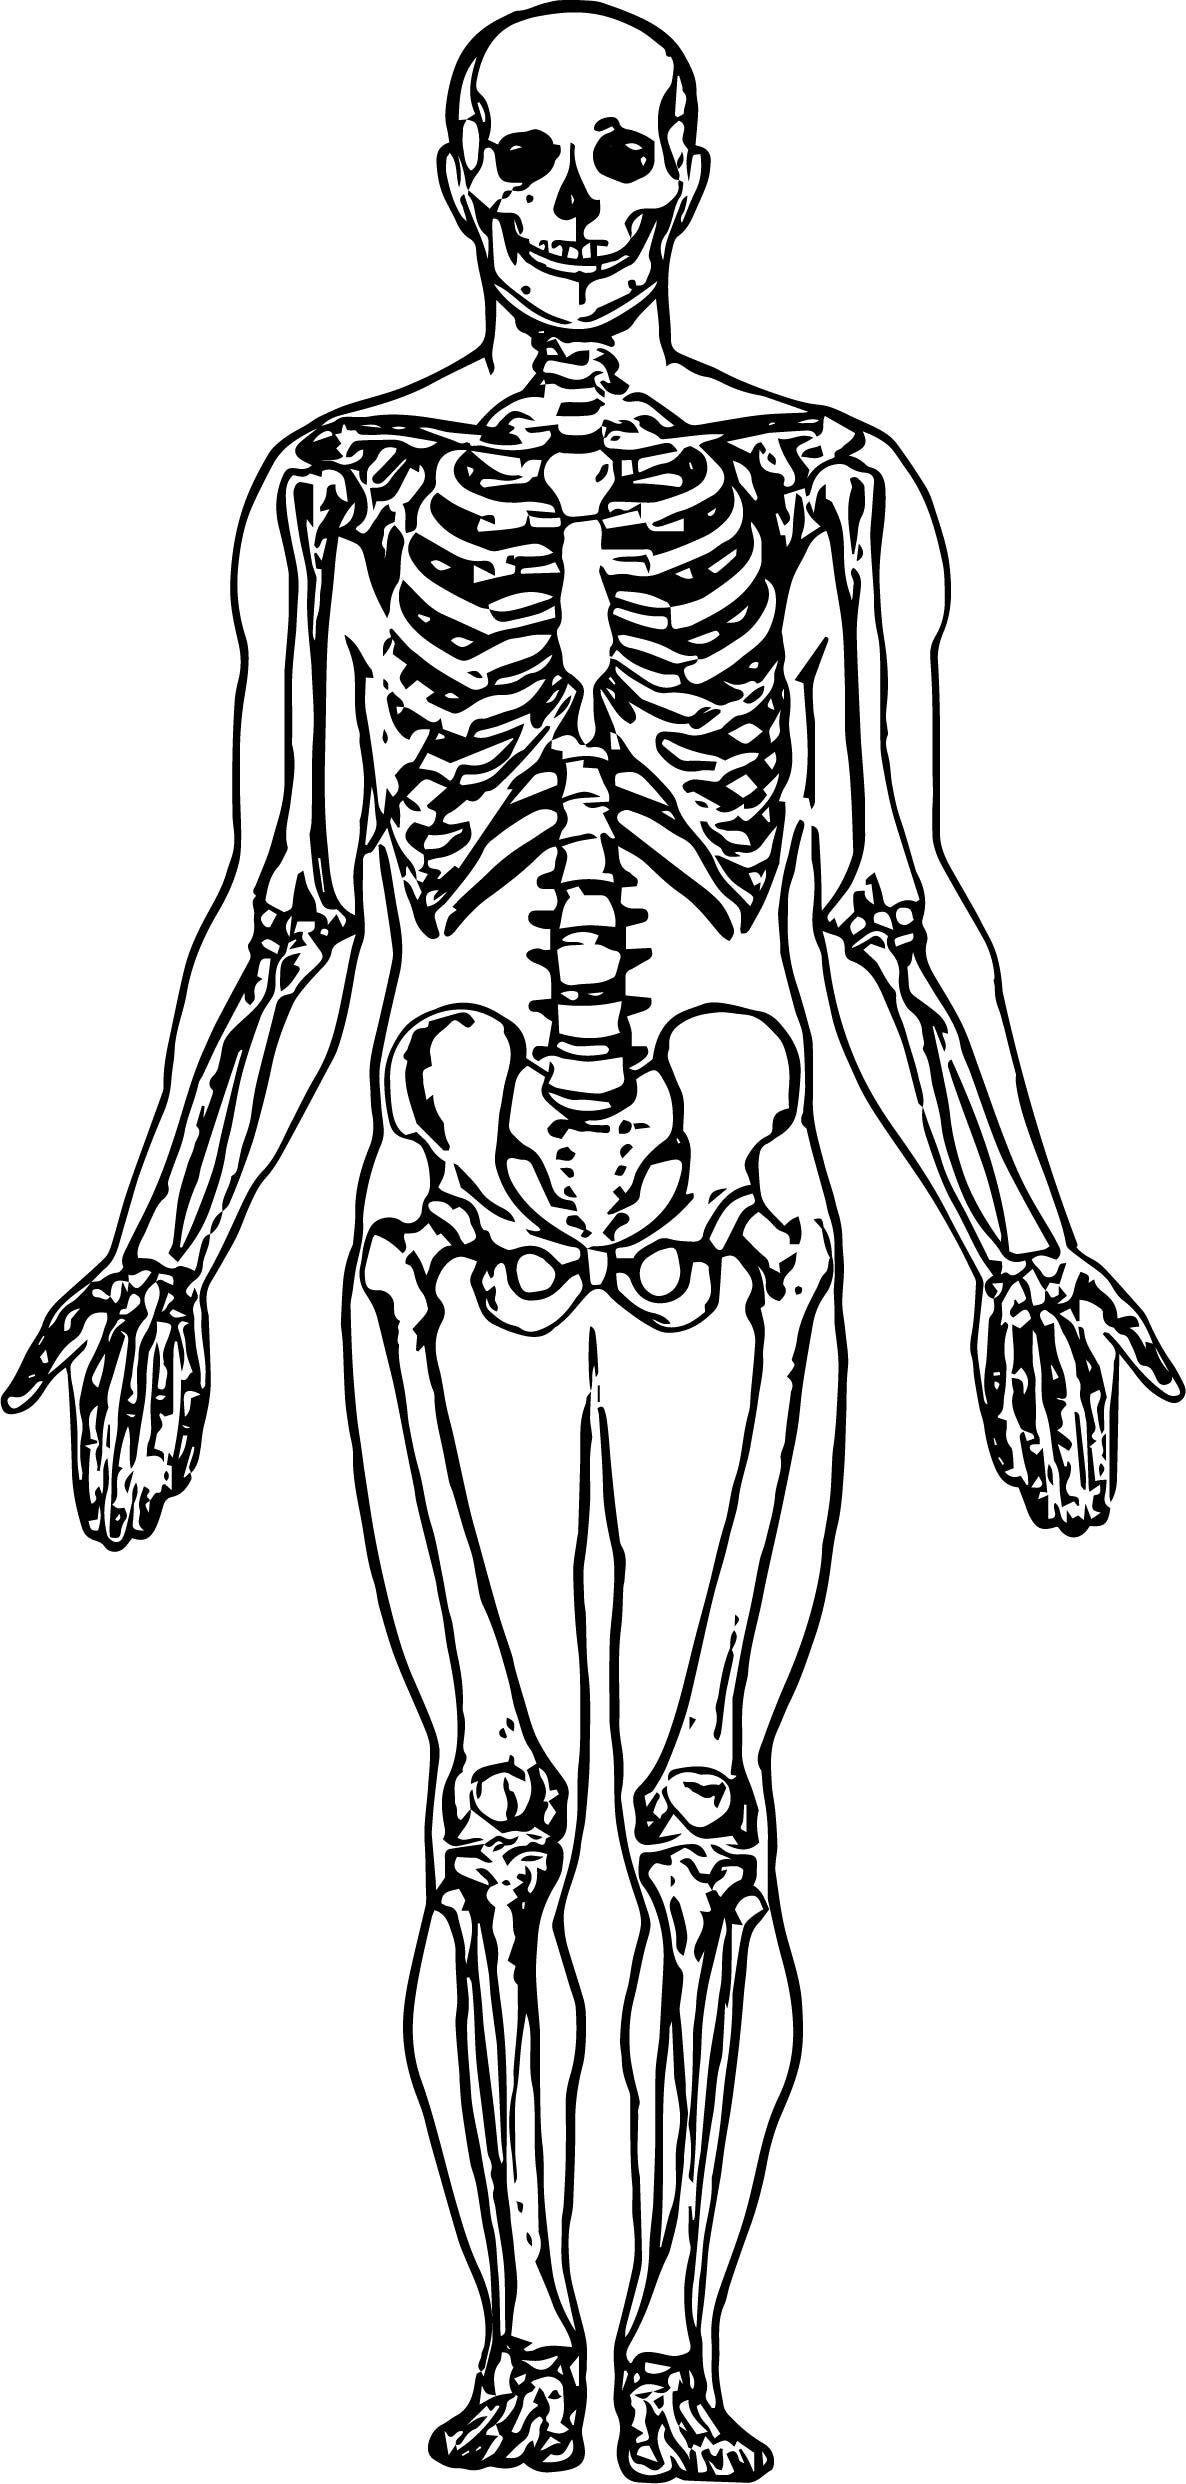 skeletal system coloring page anatomy skeleton drawing at getdrawings free download skeletal page coloring system